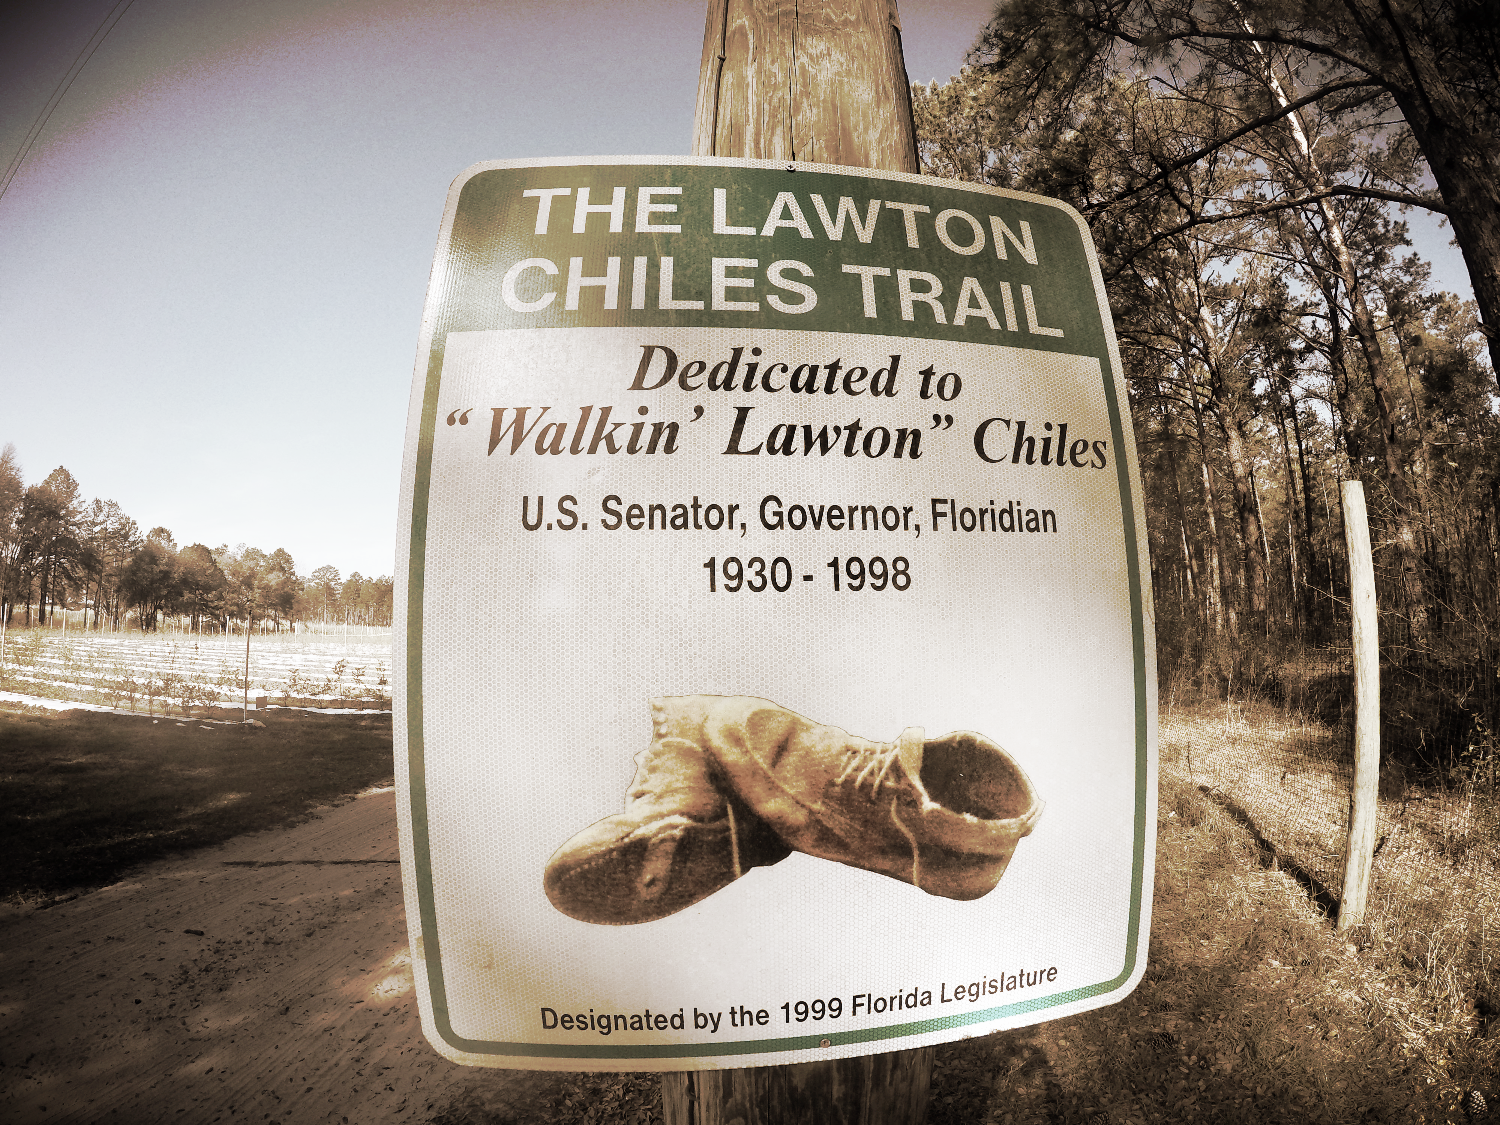 The Lawton Chiles Trail